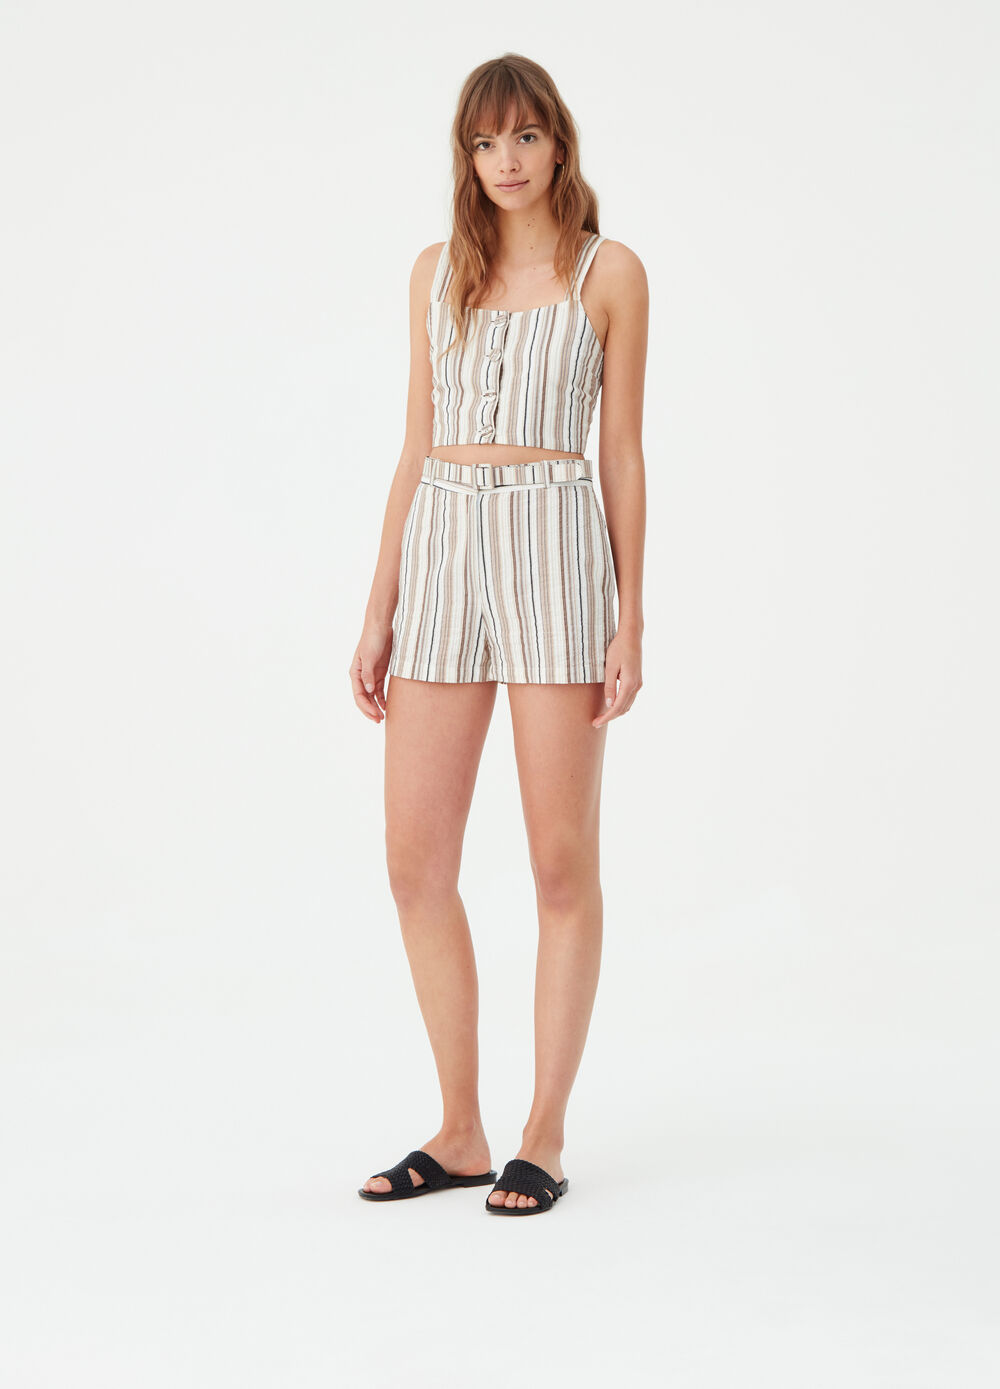 Shorts with lurex and pockets with striped pattern